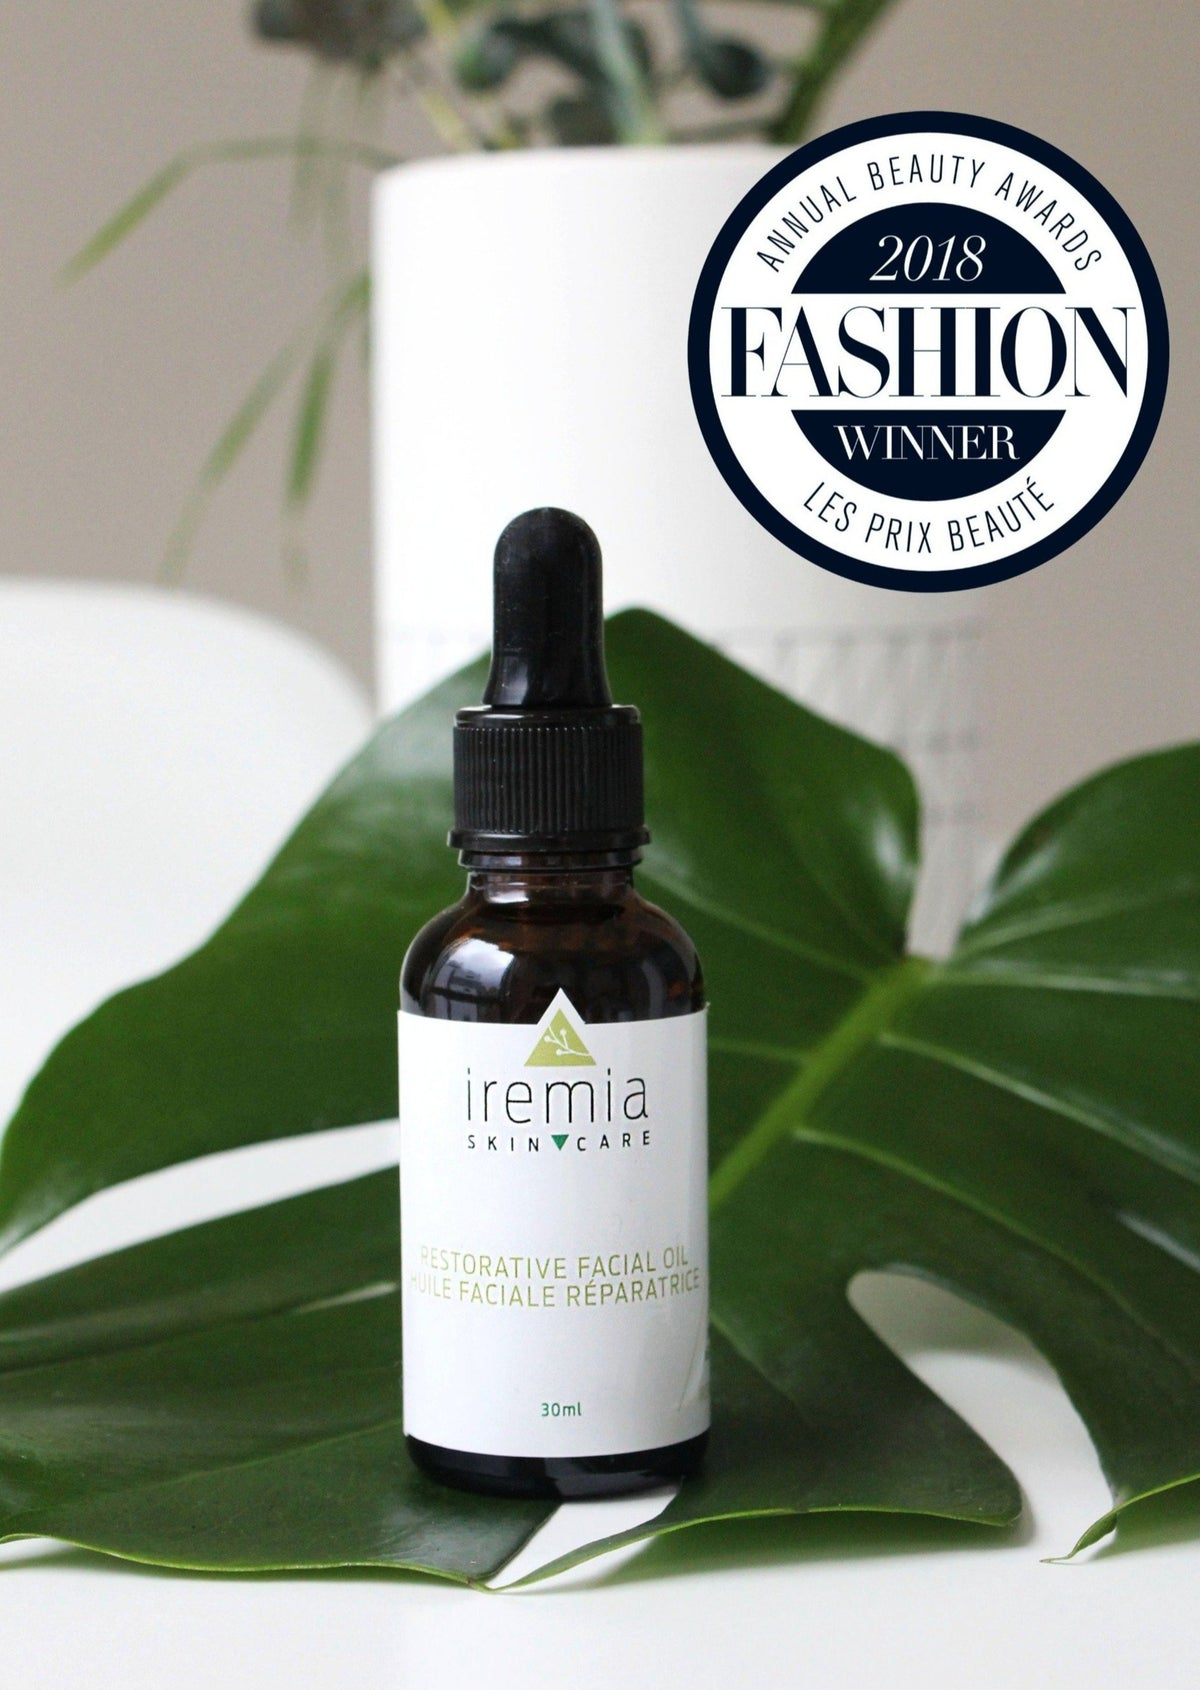 FASHION Magazine's Best Facial Oil. A beautiful blend of 11 botanical oils, including Argan, Rosehip and Sea Buckthorn oil. Packed with Omega-3, 6 and 9 fatty acids, this award-winning facial oil helps rejuvenate your skin and improves skin tone, elasticity and overall hydration.